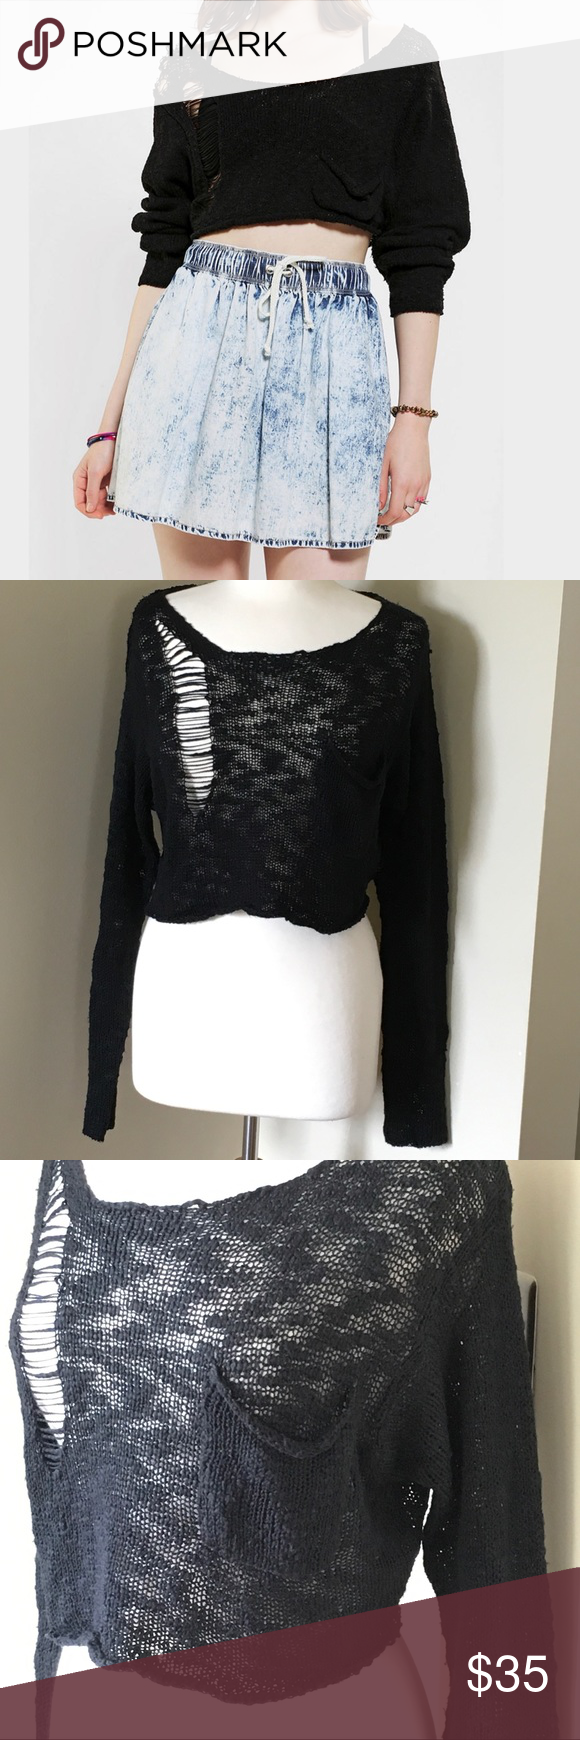 Kill City Cropped Destroyed Black Sweater